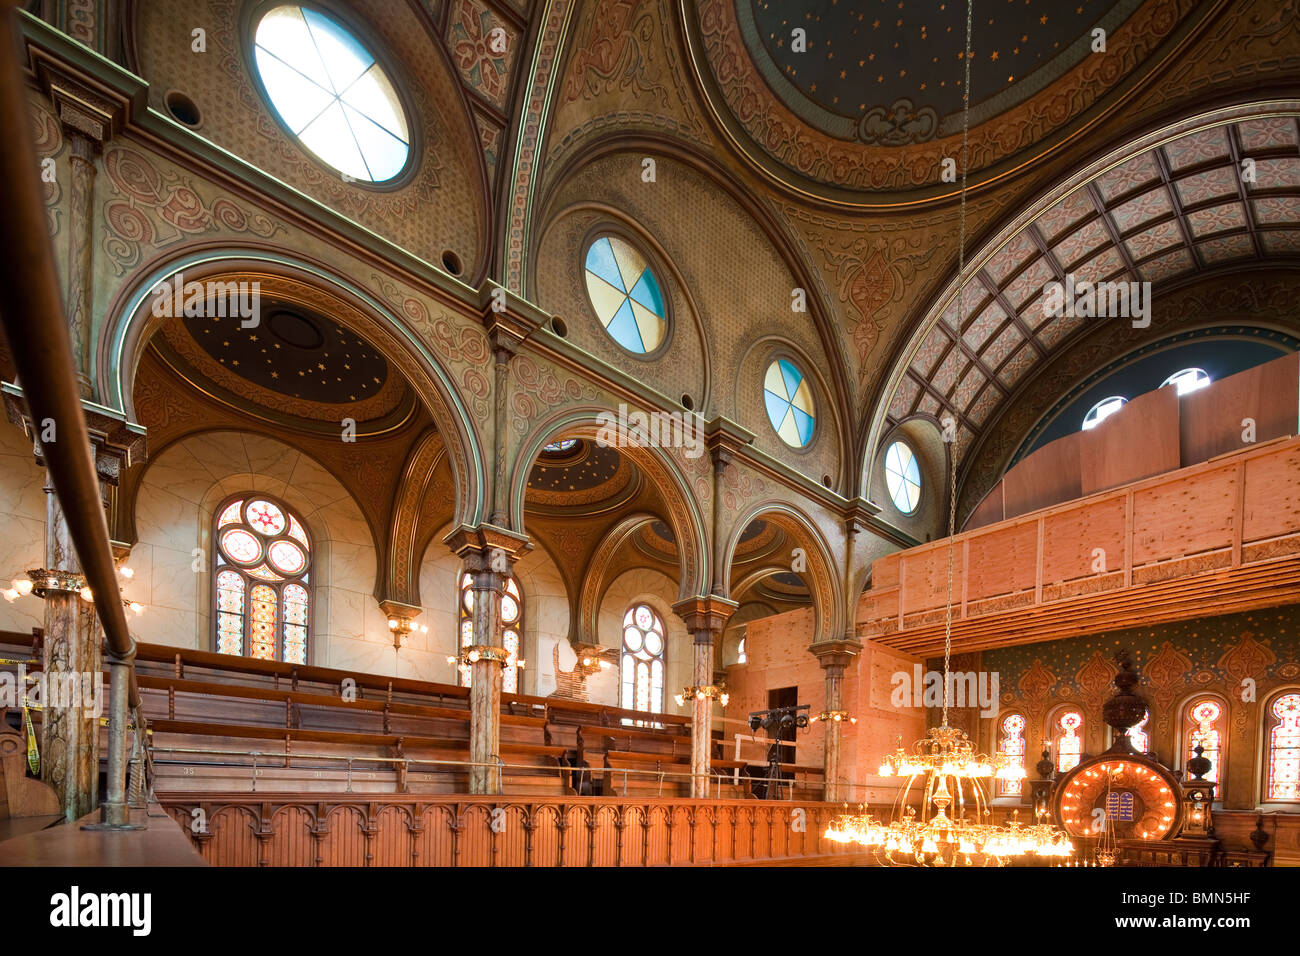 Eldridge Street Synagogue, Lower East Side, Manhattan, New